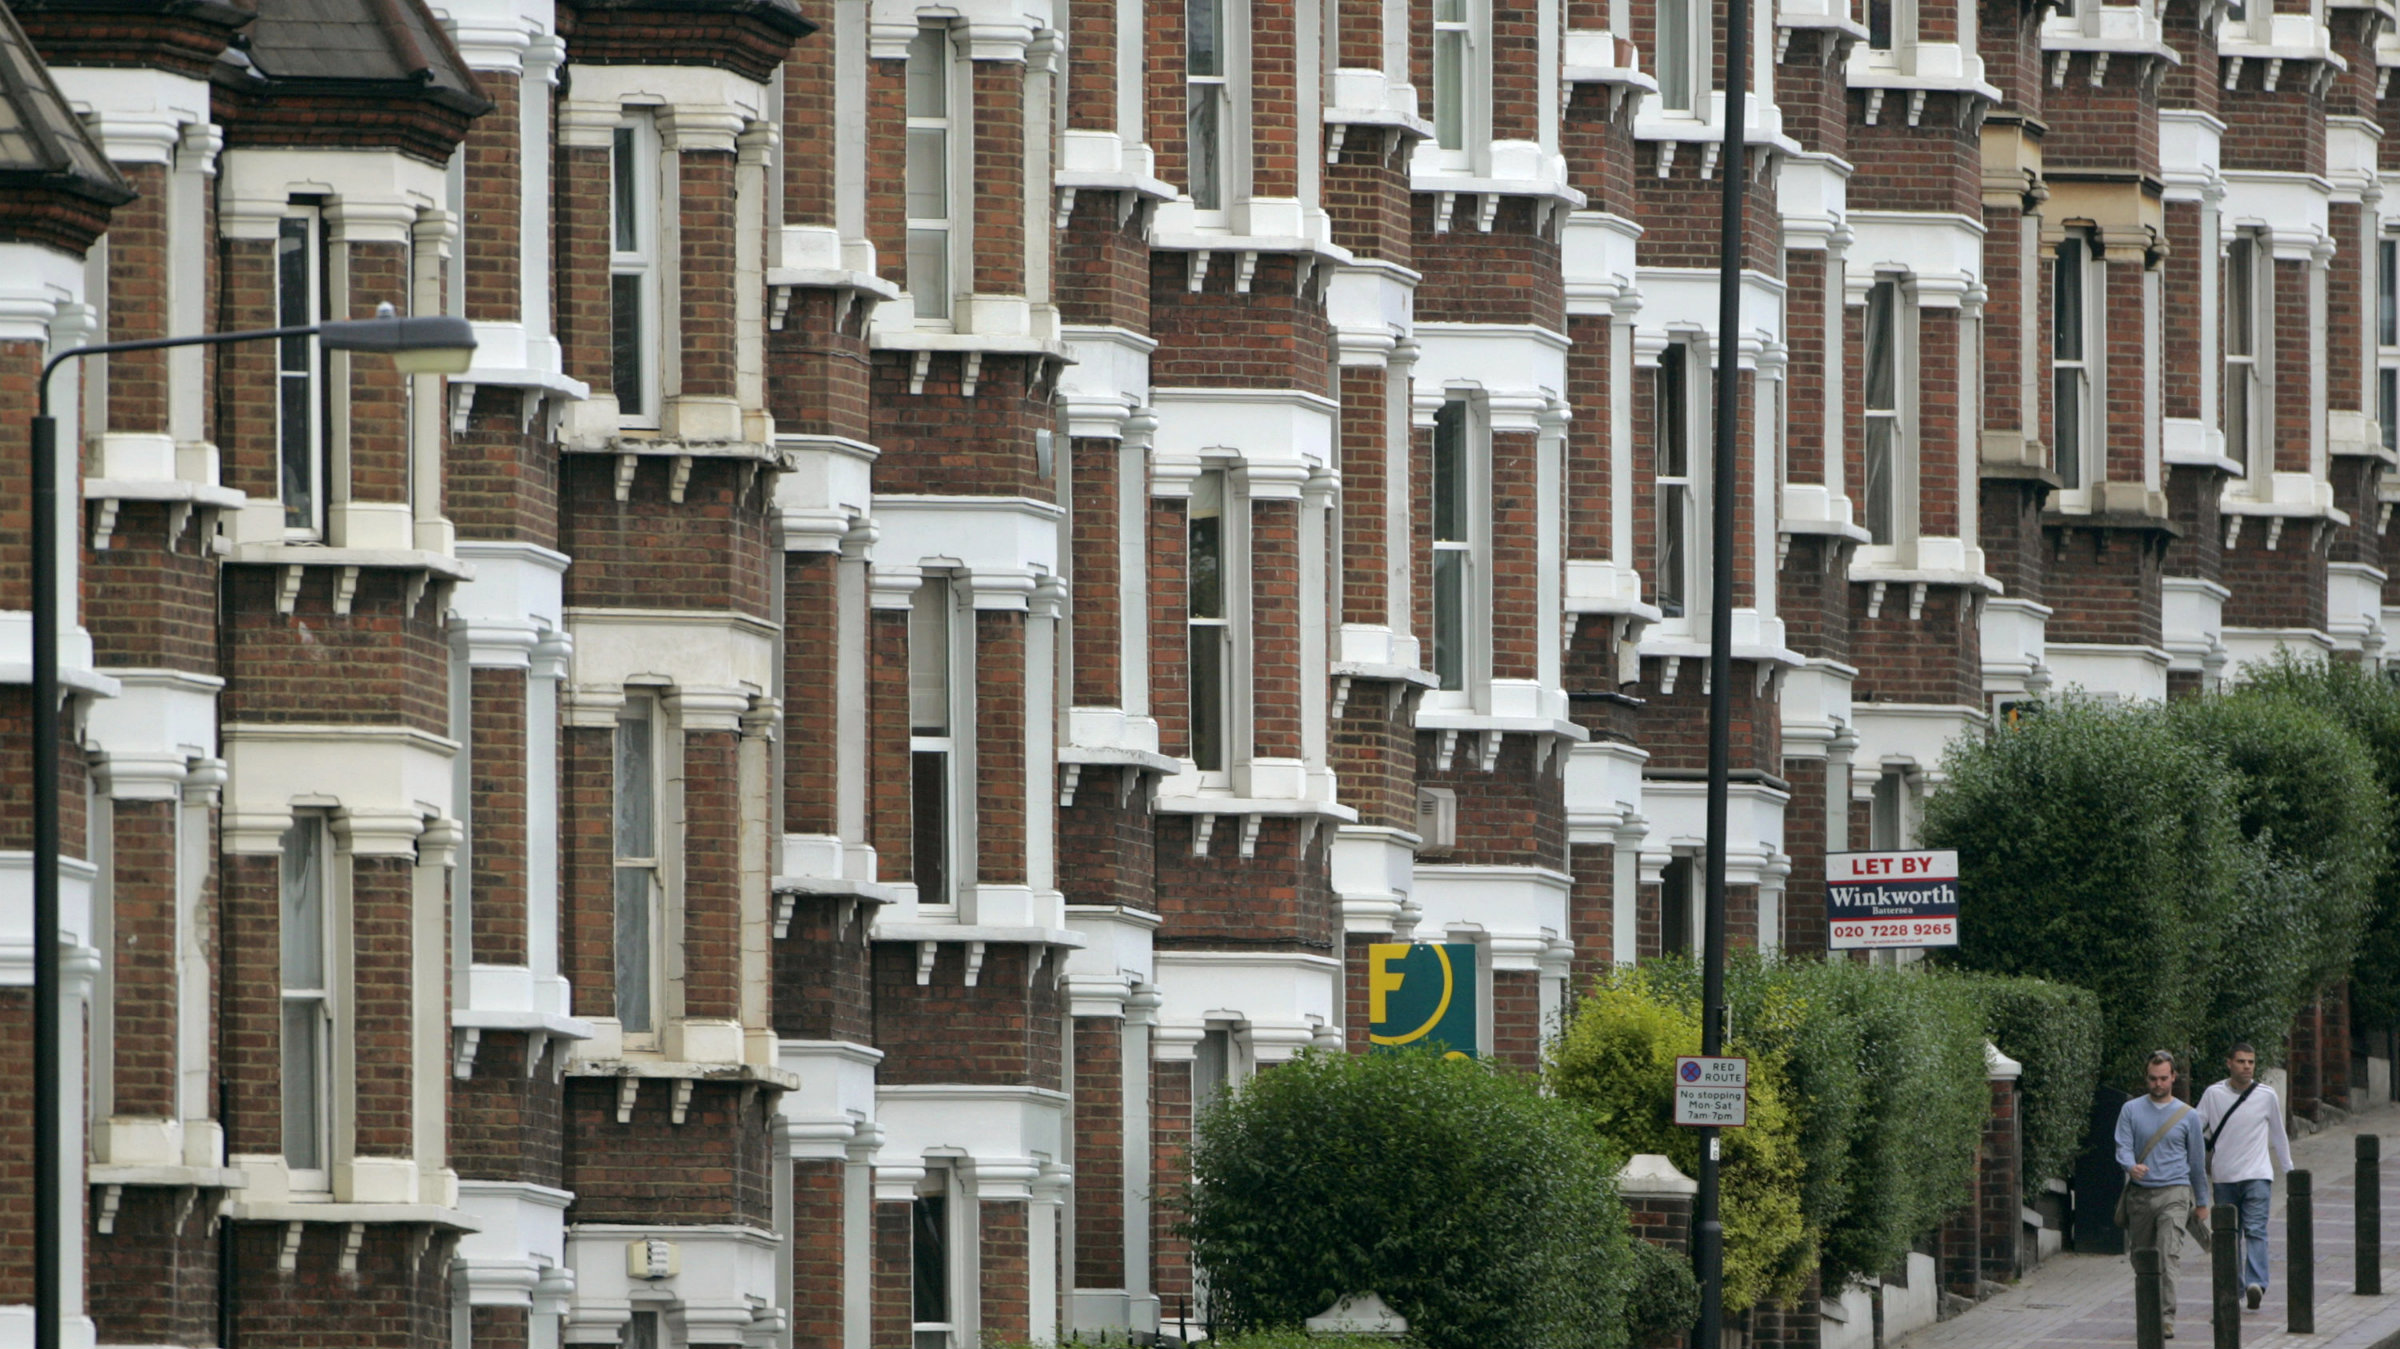 People walk past estate agents' signs outside a row of houses along a street in south London.